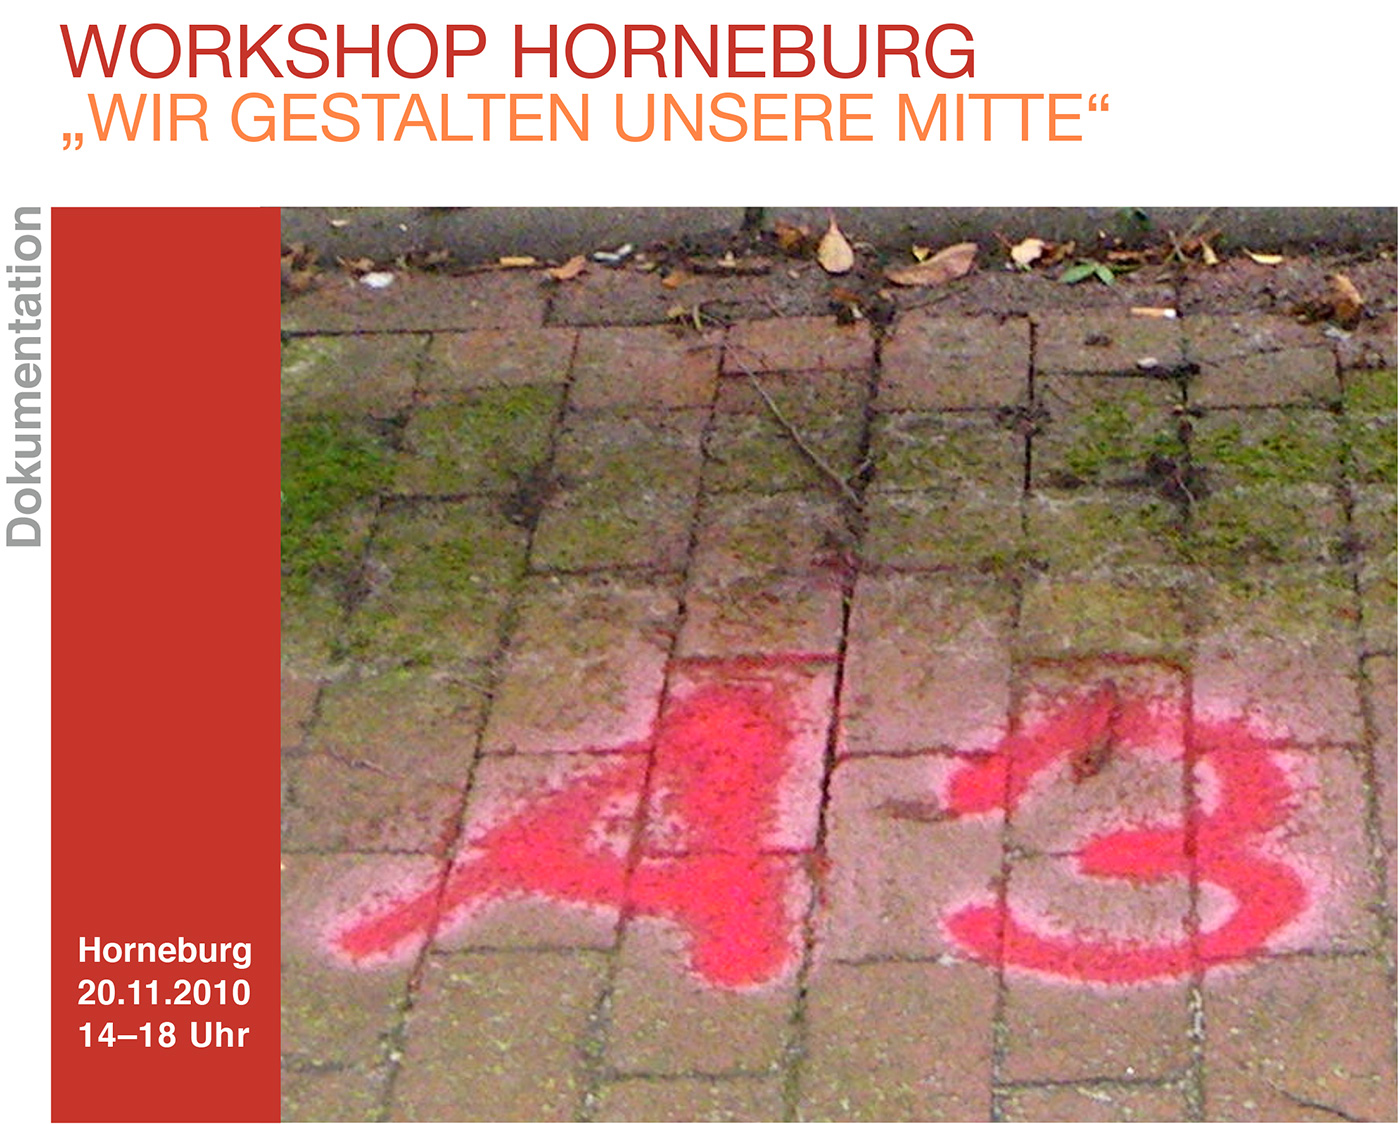 Titelbild der Workshop-Dokumentation